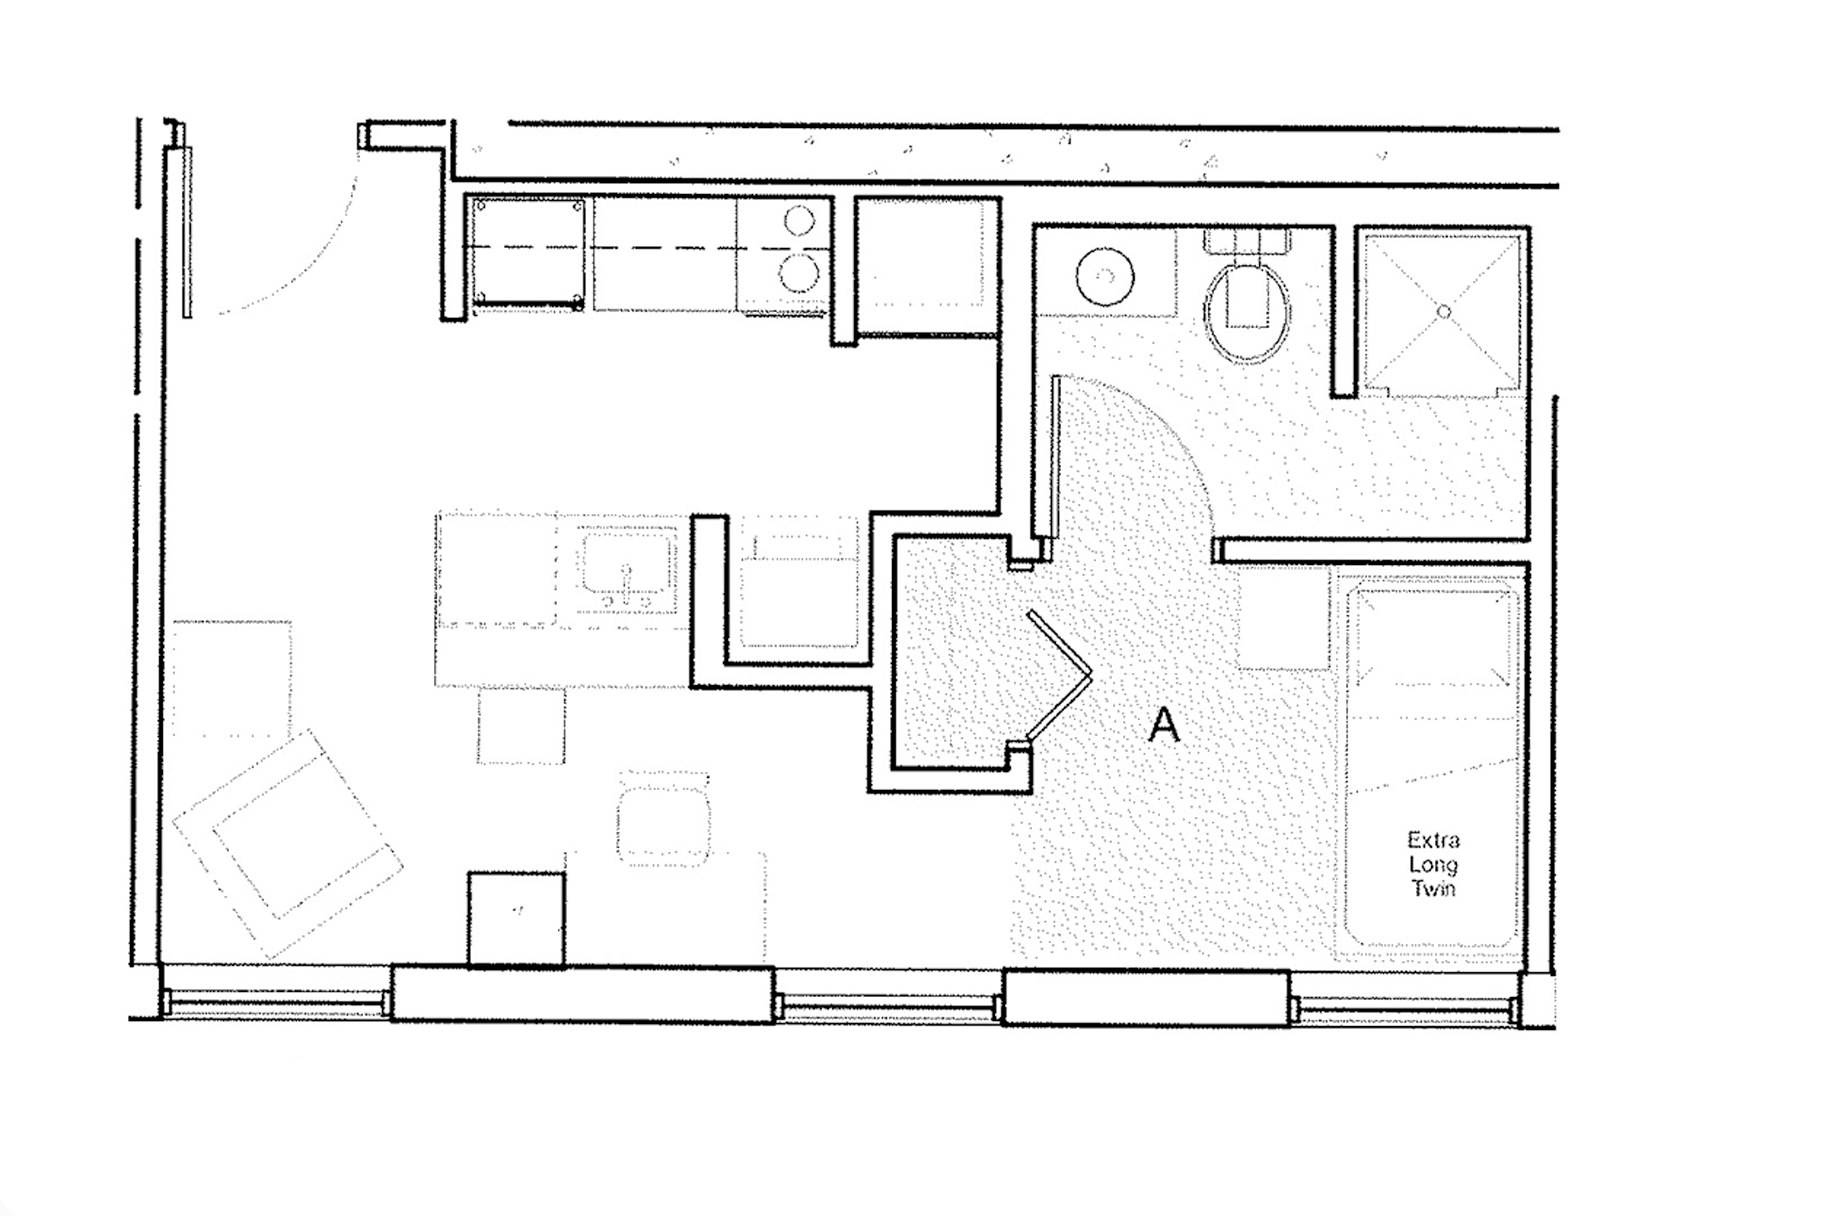 Studio Apartment Layout for 318